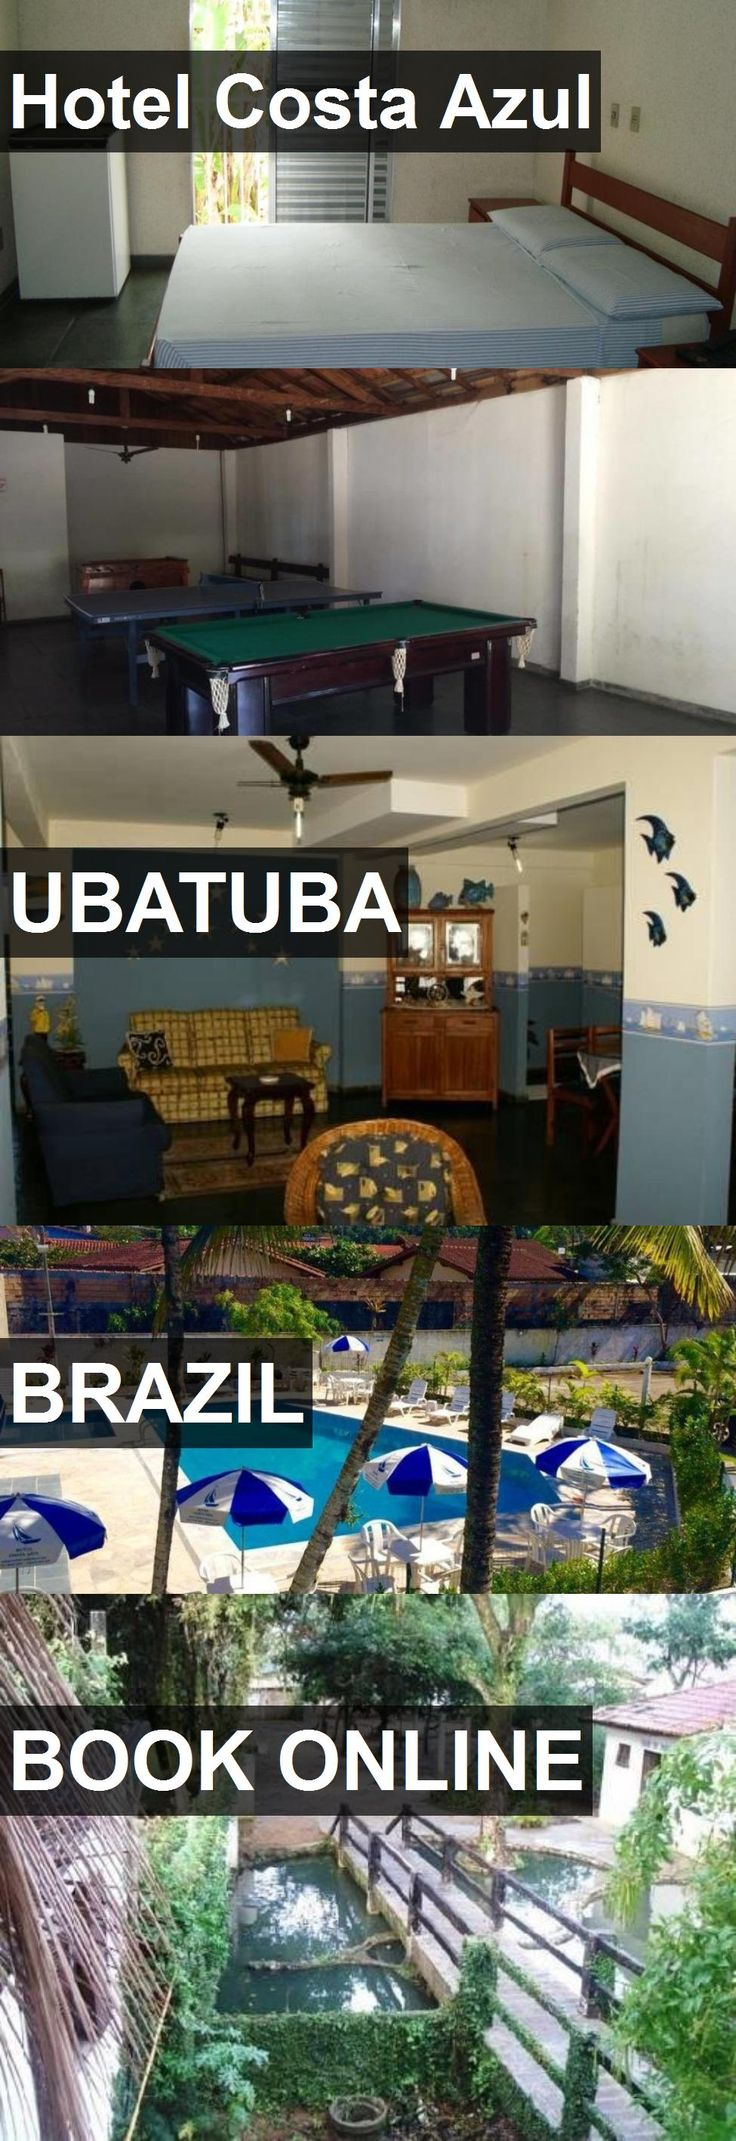 Hotel Hotel Costa Azul in Ubatuba, Brazil. For more information, photos, reviews and best prices please follow the link. #Brazil #Ubatuba #HotelCostaAzul #hotel #travel #vacation